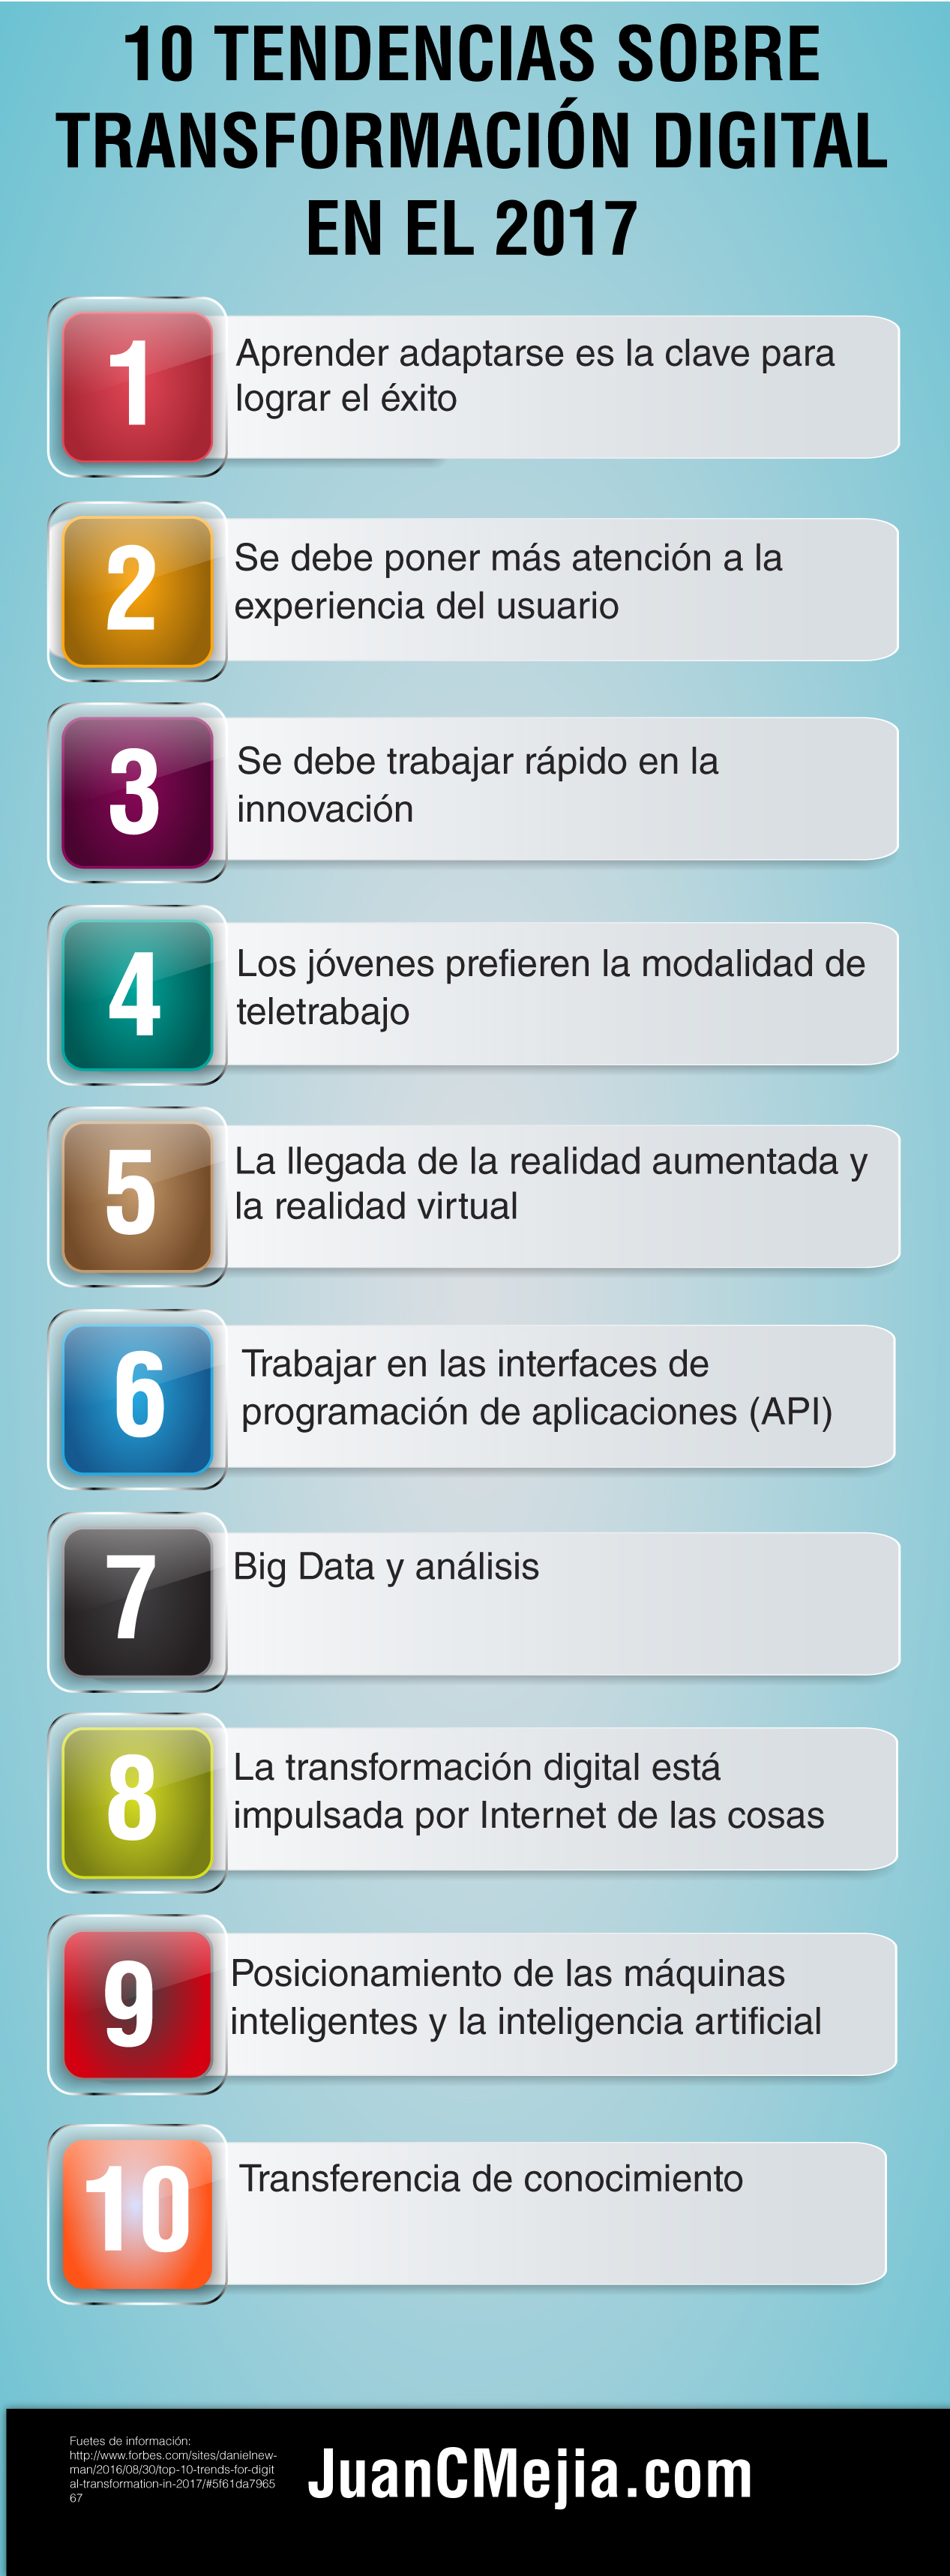 10 Tendencias de Transformacion Digital